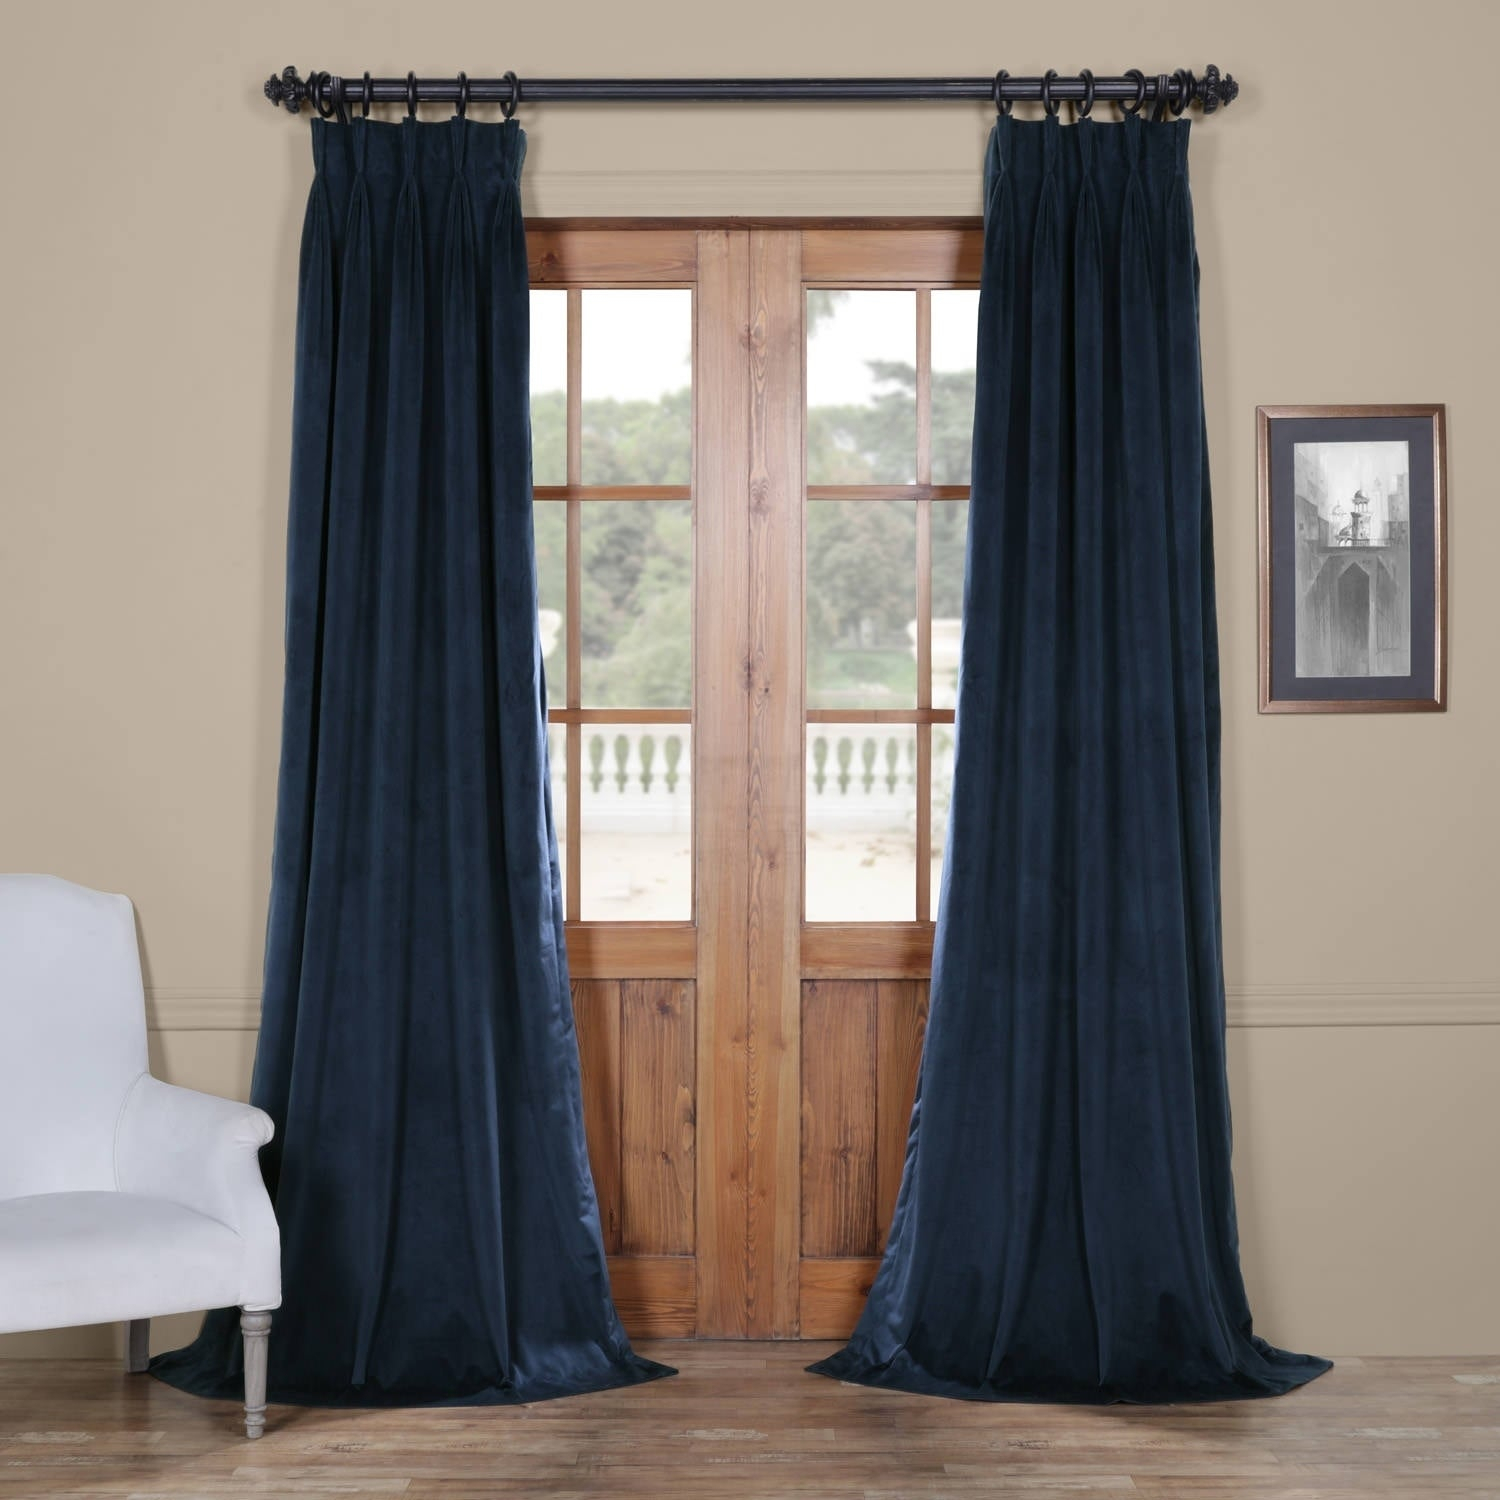 Exclusive Fabrics Signature Pinch Pleated Blackout Solid Velvet Curtain Panel With Regard To Signature Pinch Pleated Blackout Solid Velvet Curtain Panels (View 16 of 36)